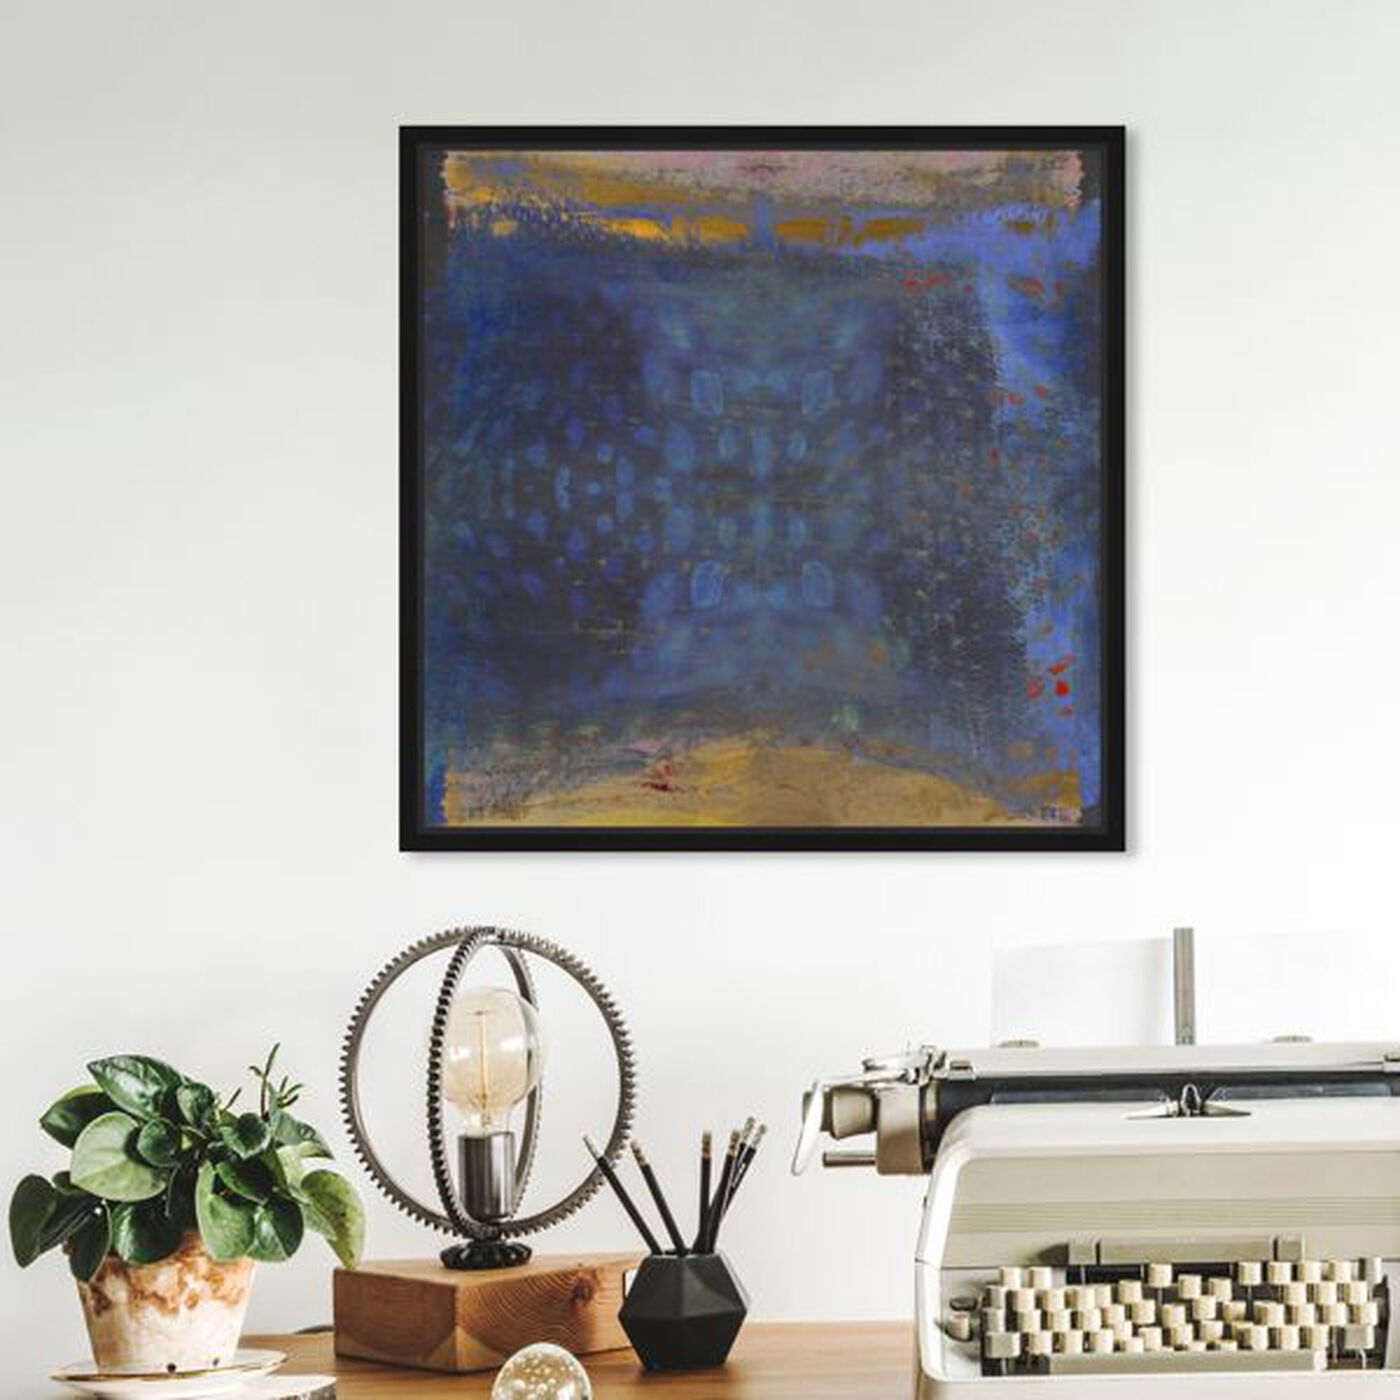 Hanging view of Golden Beach featuring abstract and textures art.